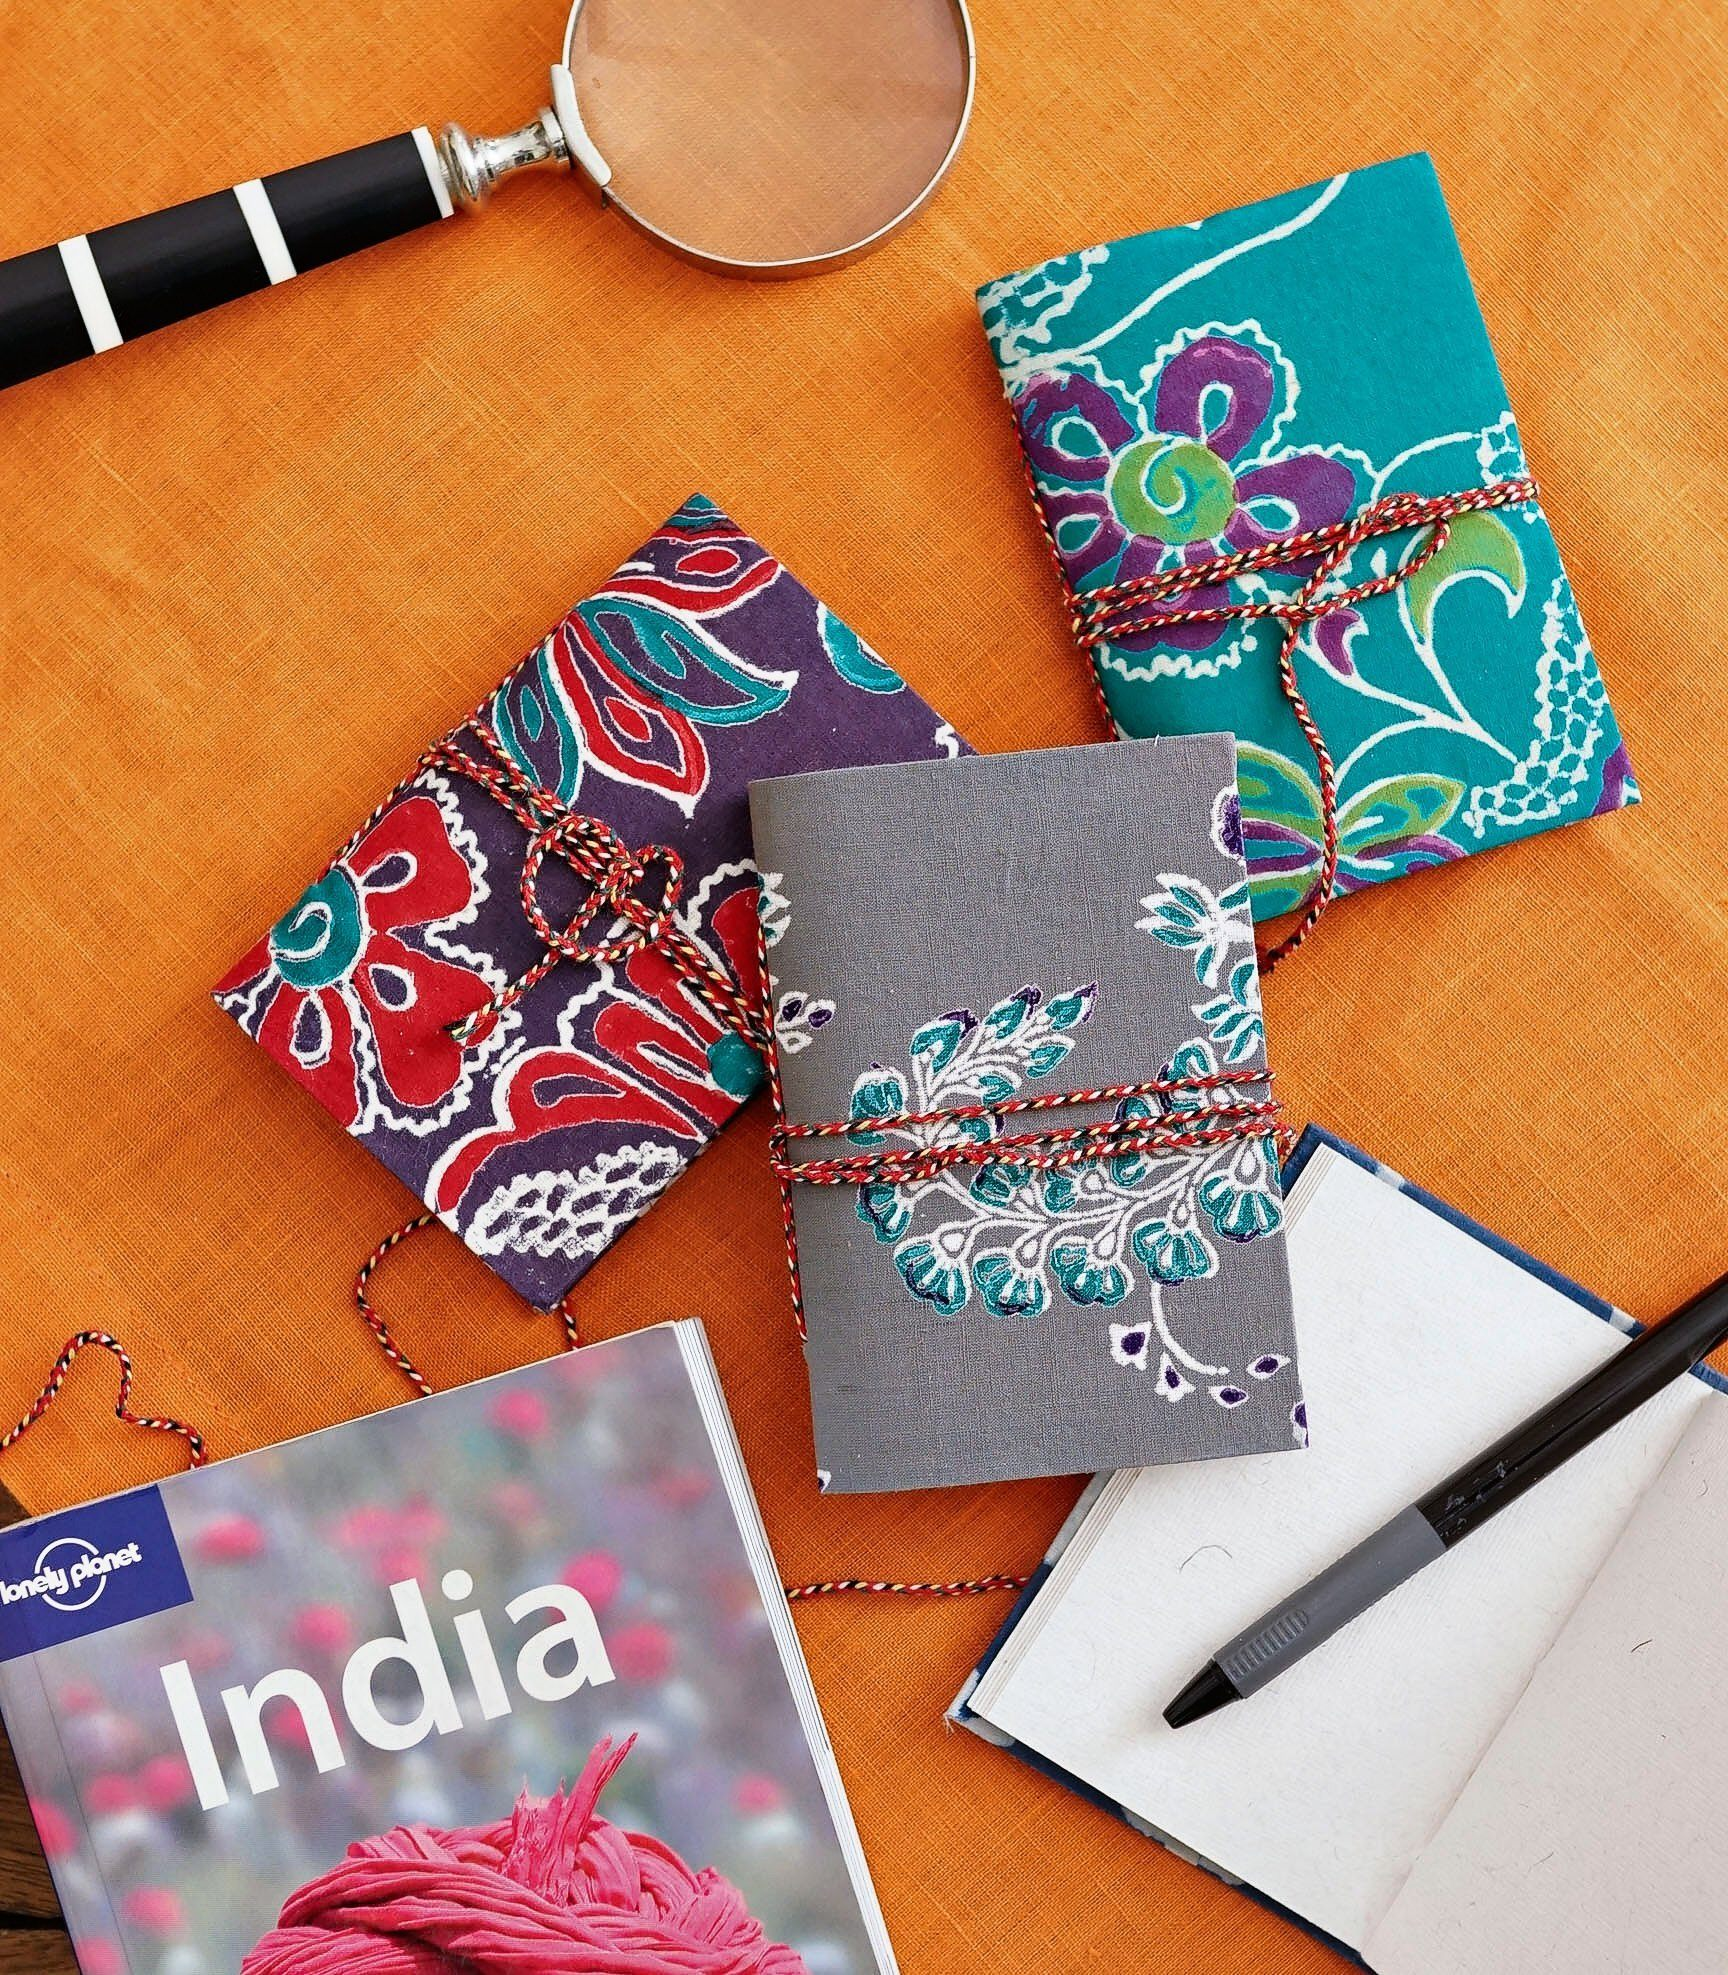 Paper - Jharna Handmade Tree Free Notebook - Floral